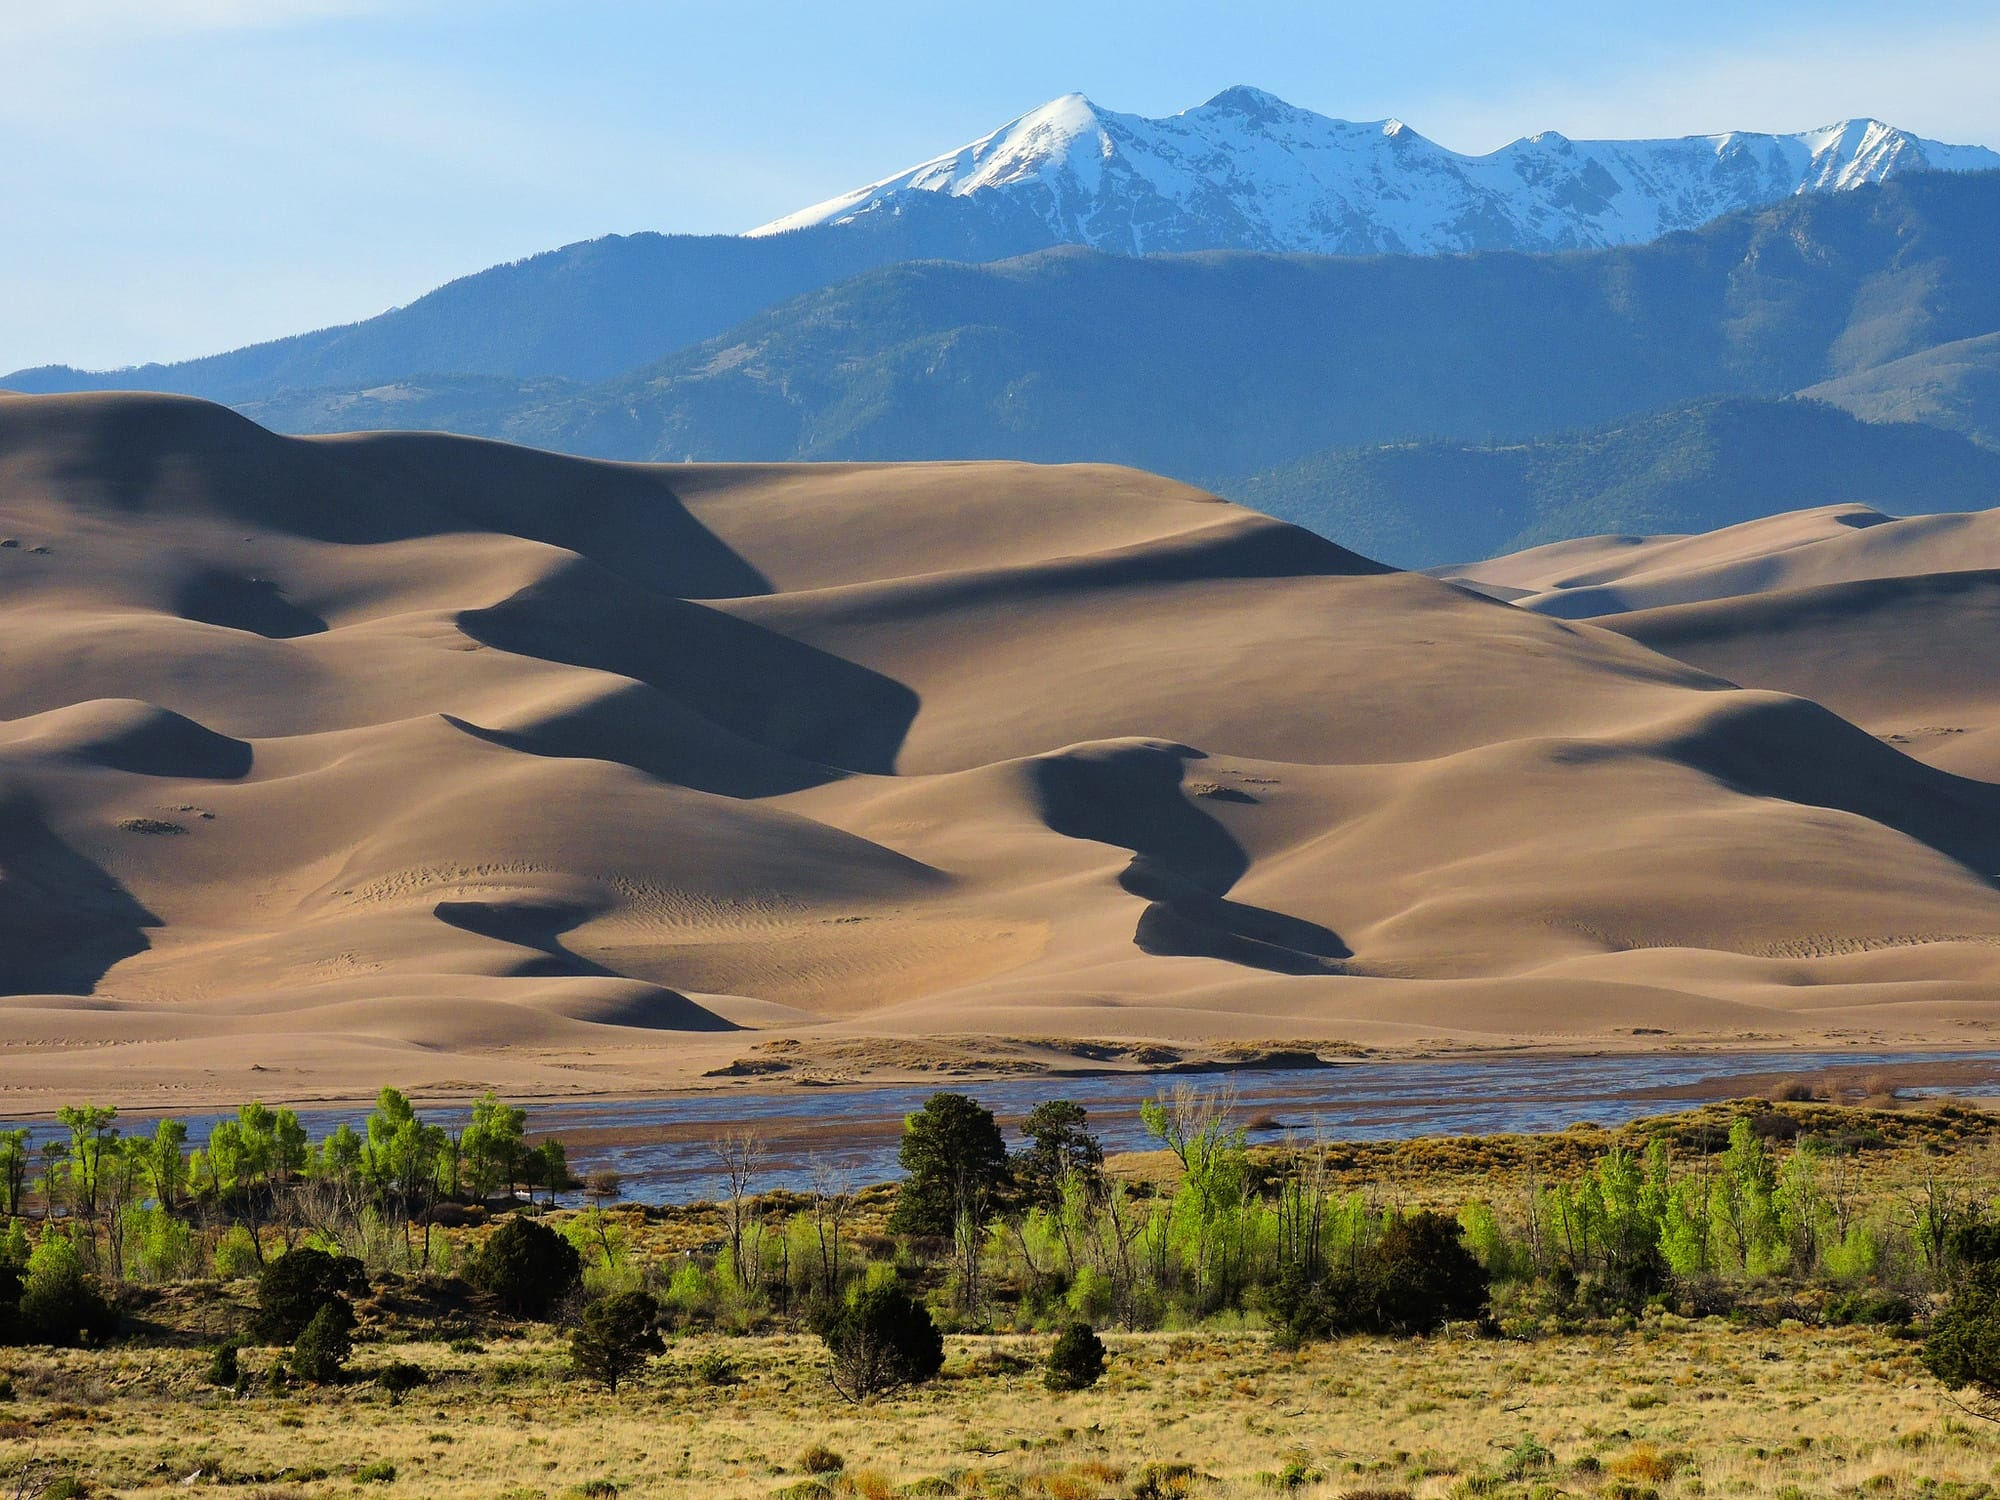 Are dogs allowed in Great Sand Dunes National Park? Learn the trails and campgrounds where dogs are permitted in this blog post.